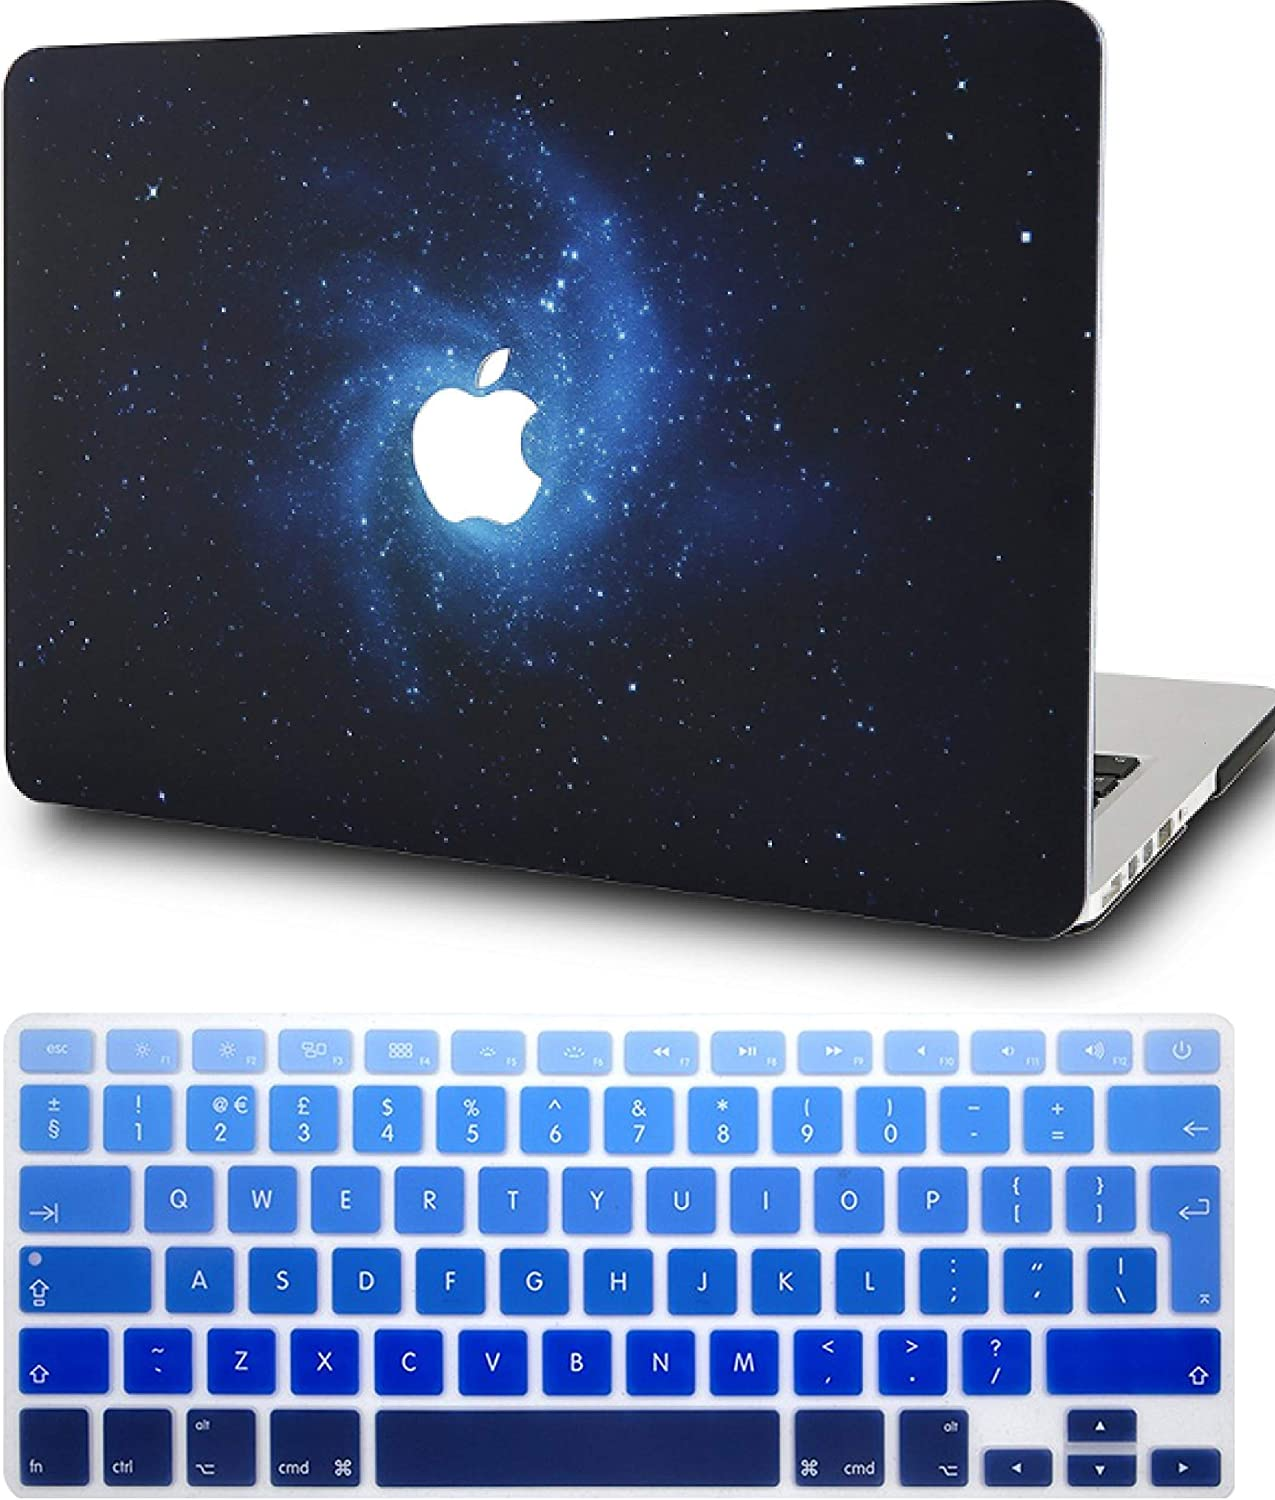 "KECC Laptop Case for MacBook Pro 15"" (2019/2018/2017/2016) w/Keyboard Cover Plastic Hard Shell A1990/A1707 Touch Bar 2 in 1 Bundle (Blue)"